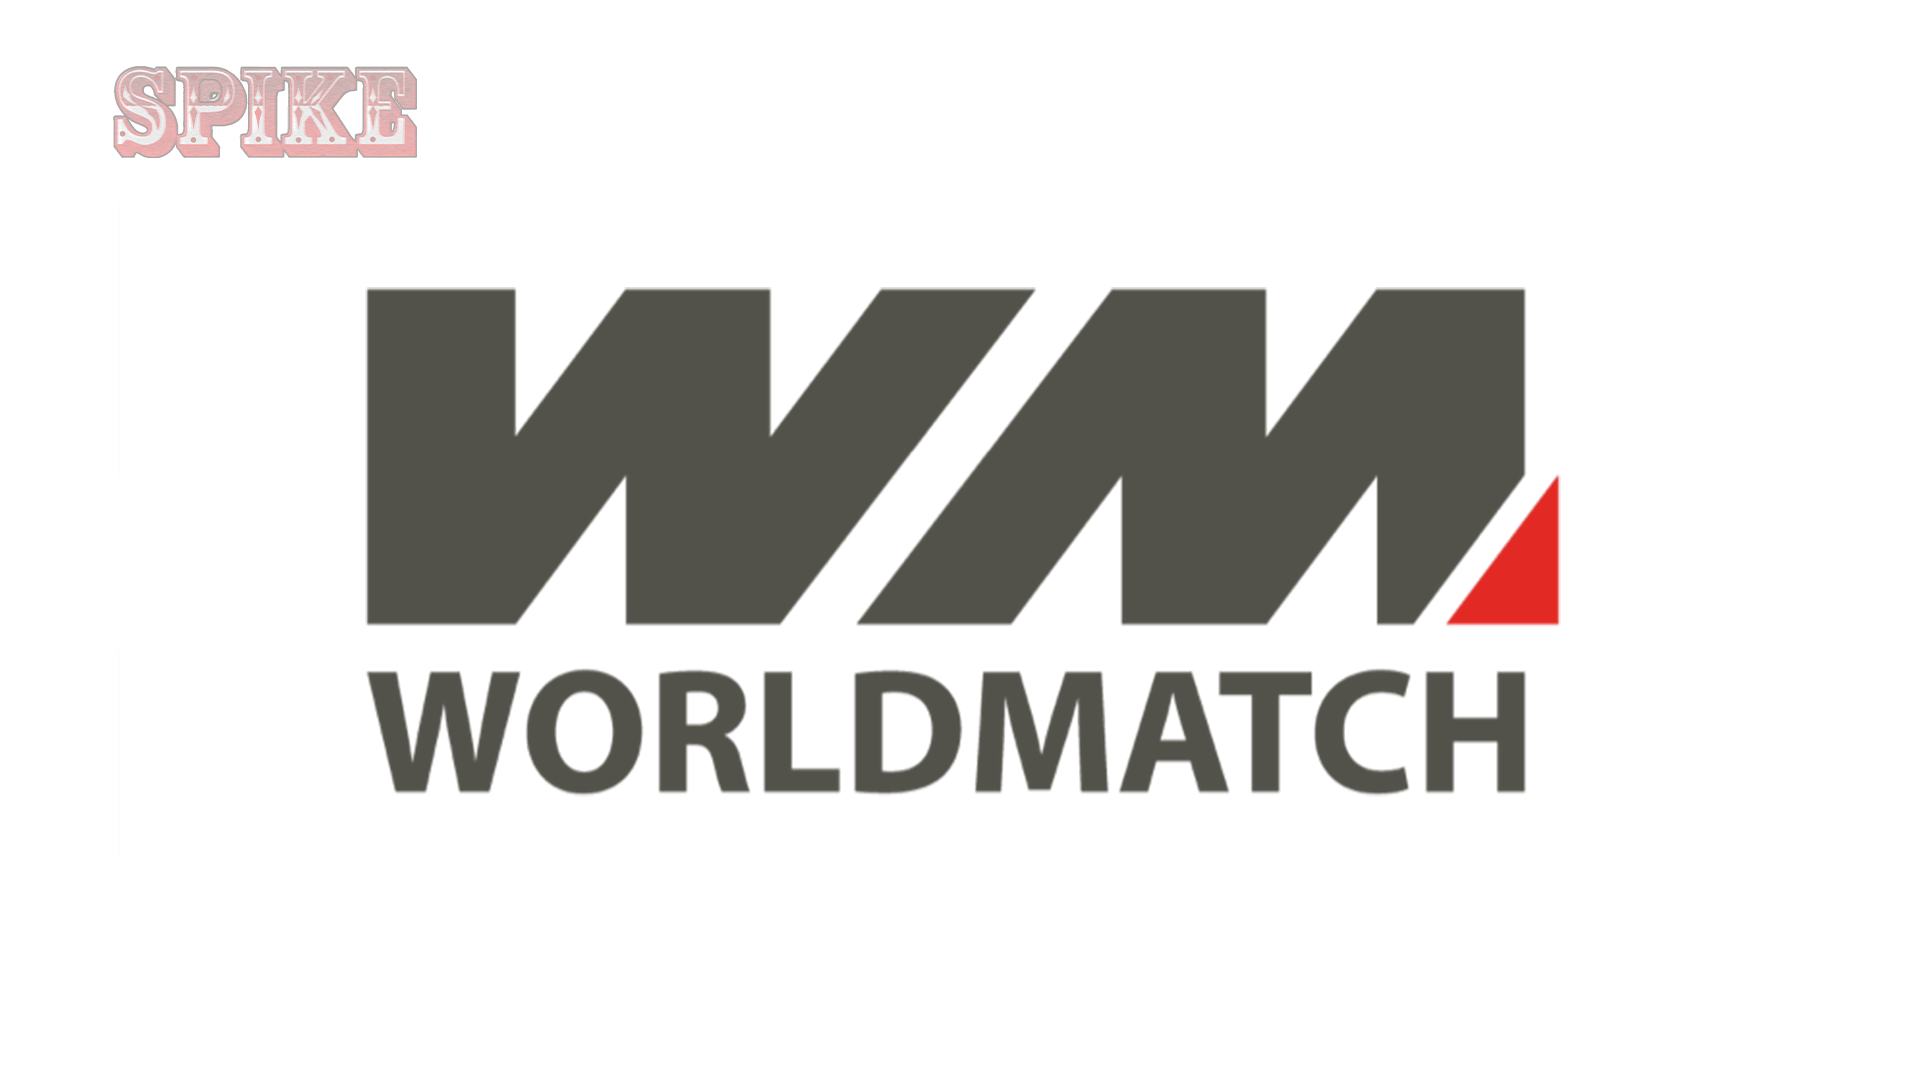 worldmatch producer free demo online slot